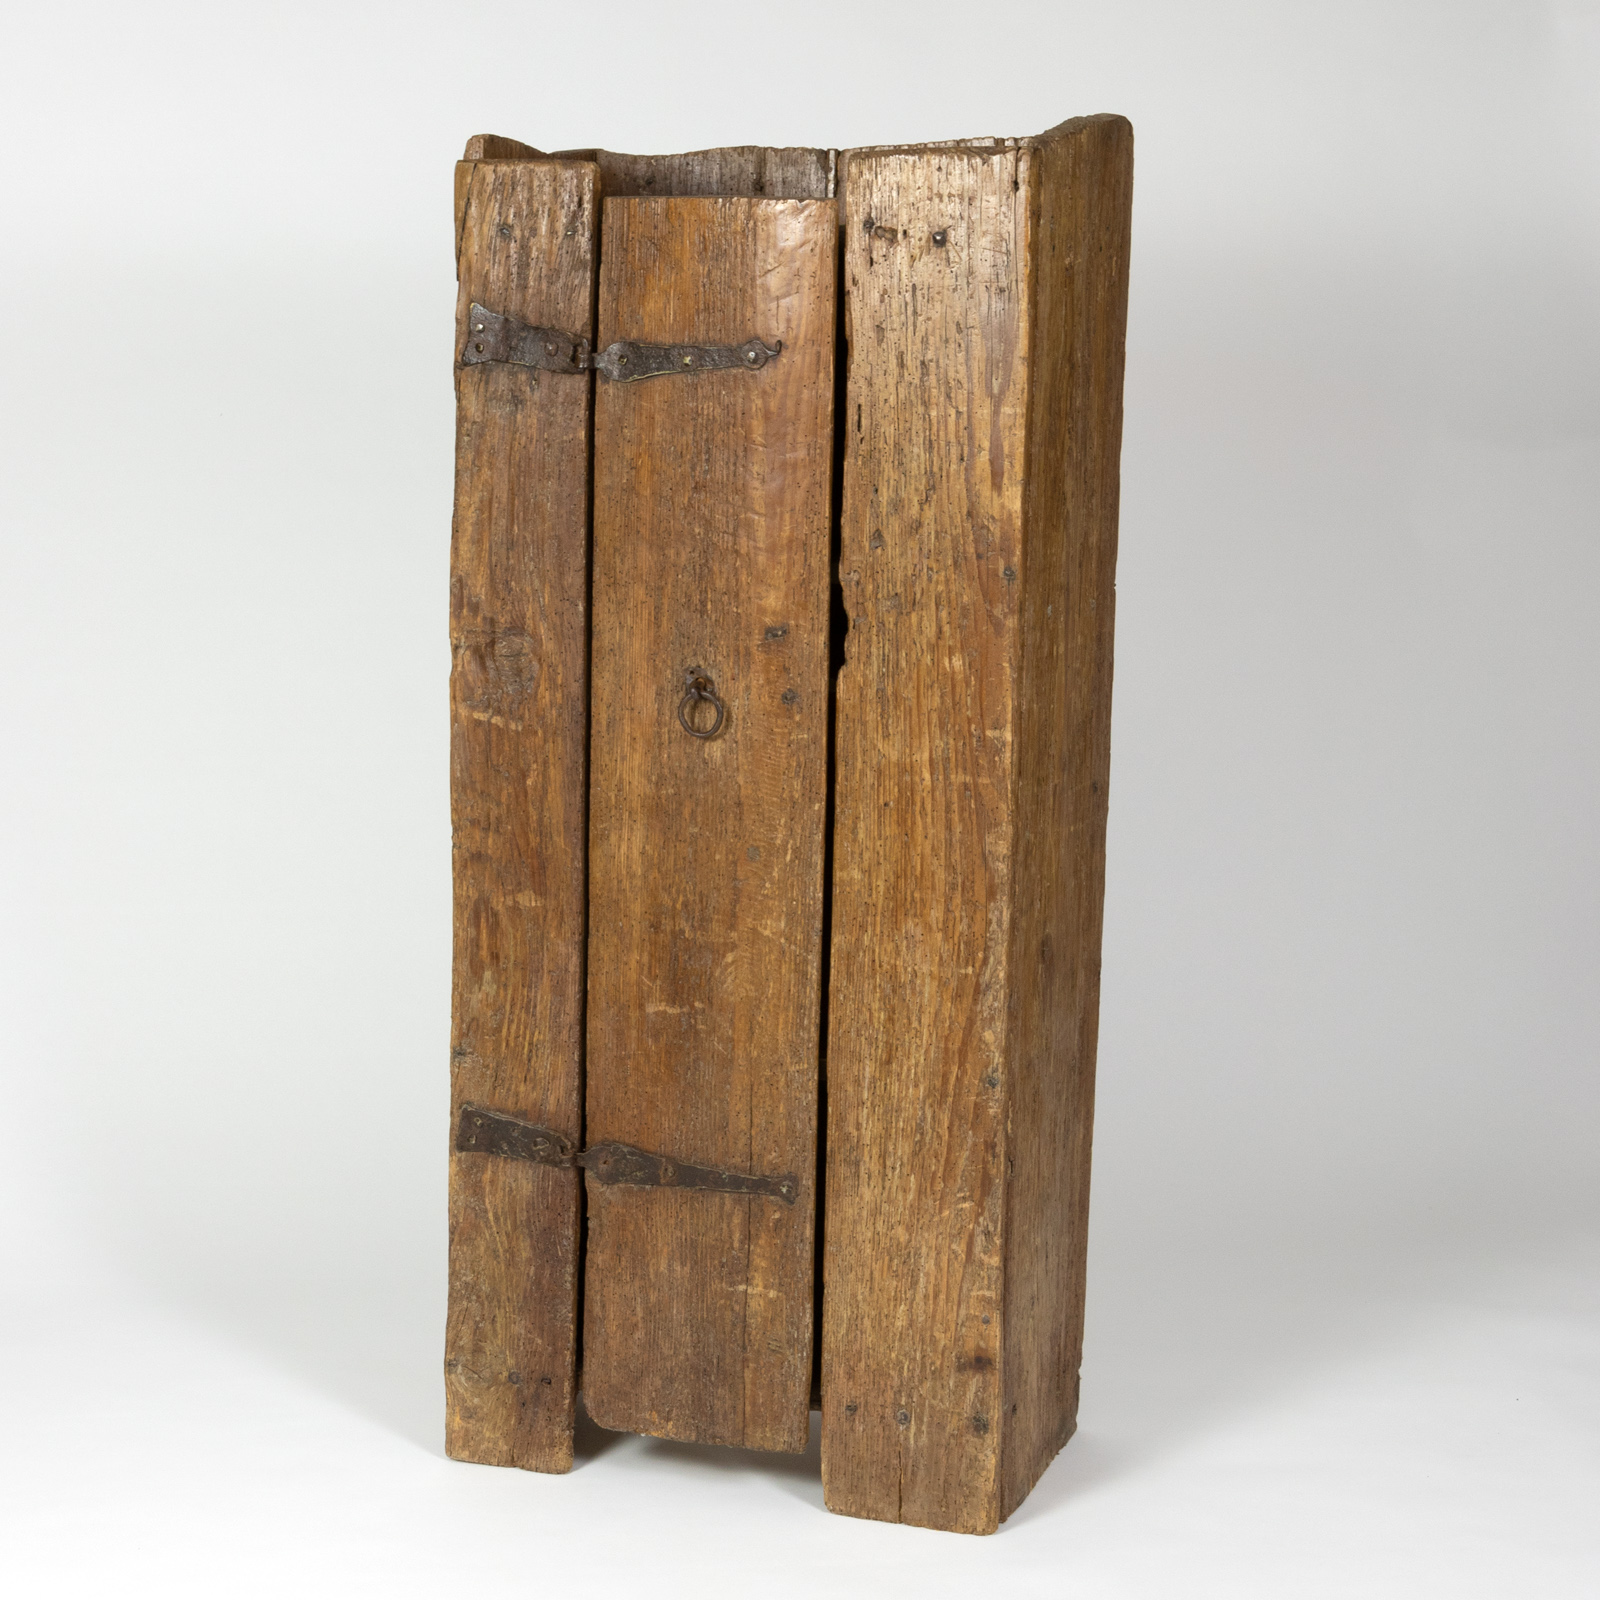 Very Rustic Italian Chestnut Single Door Cabinet With Wrought Iron Hinges,  Circa 1720